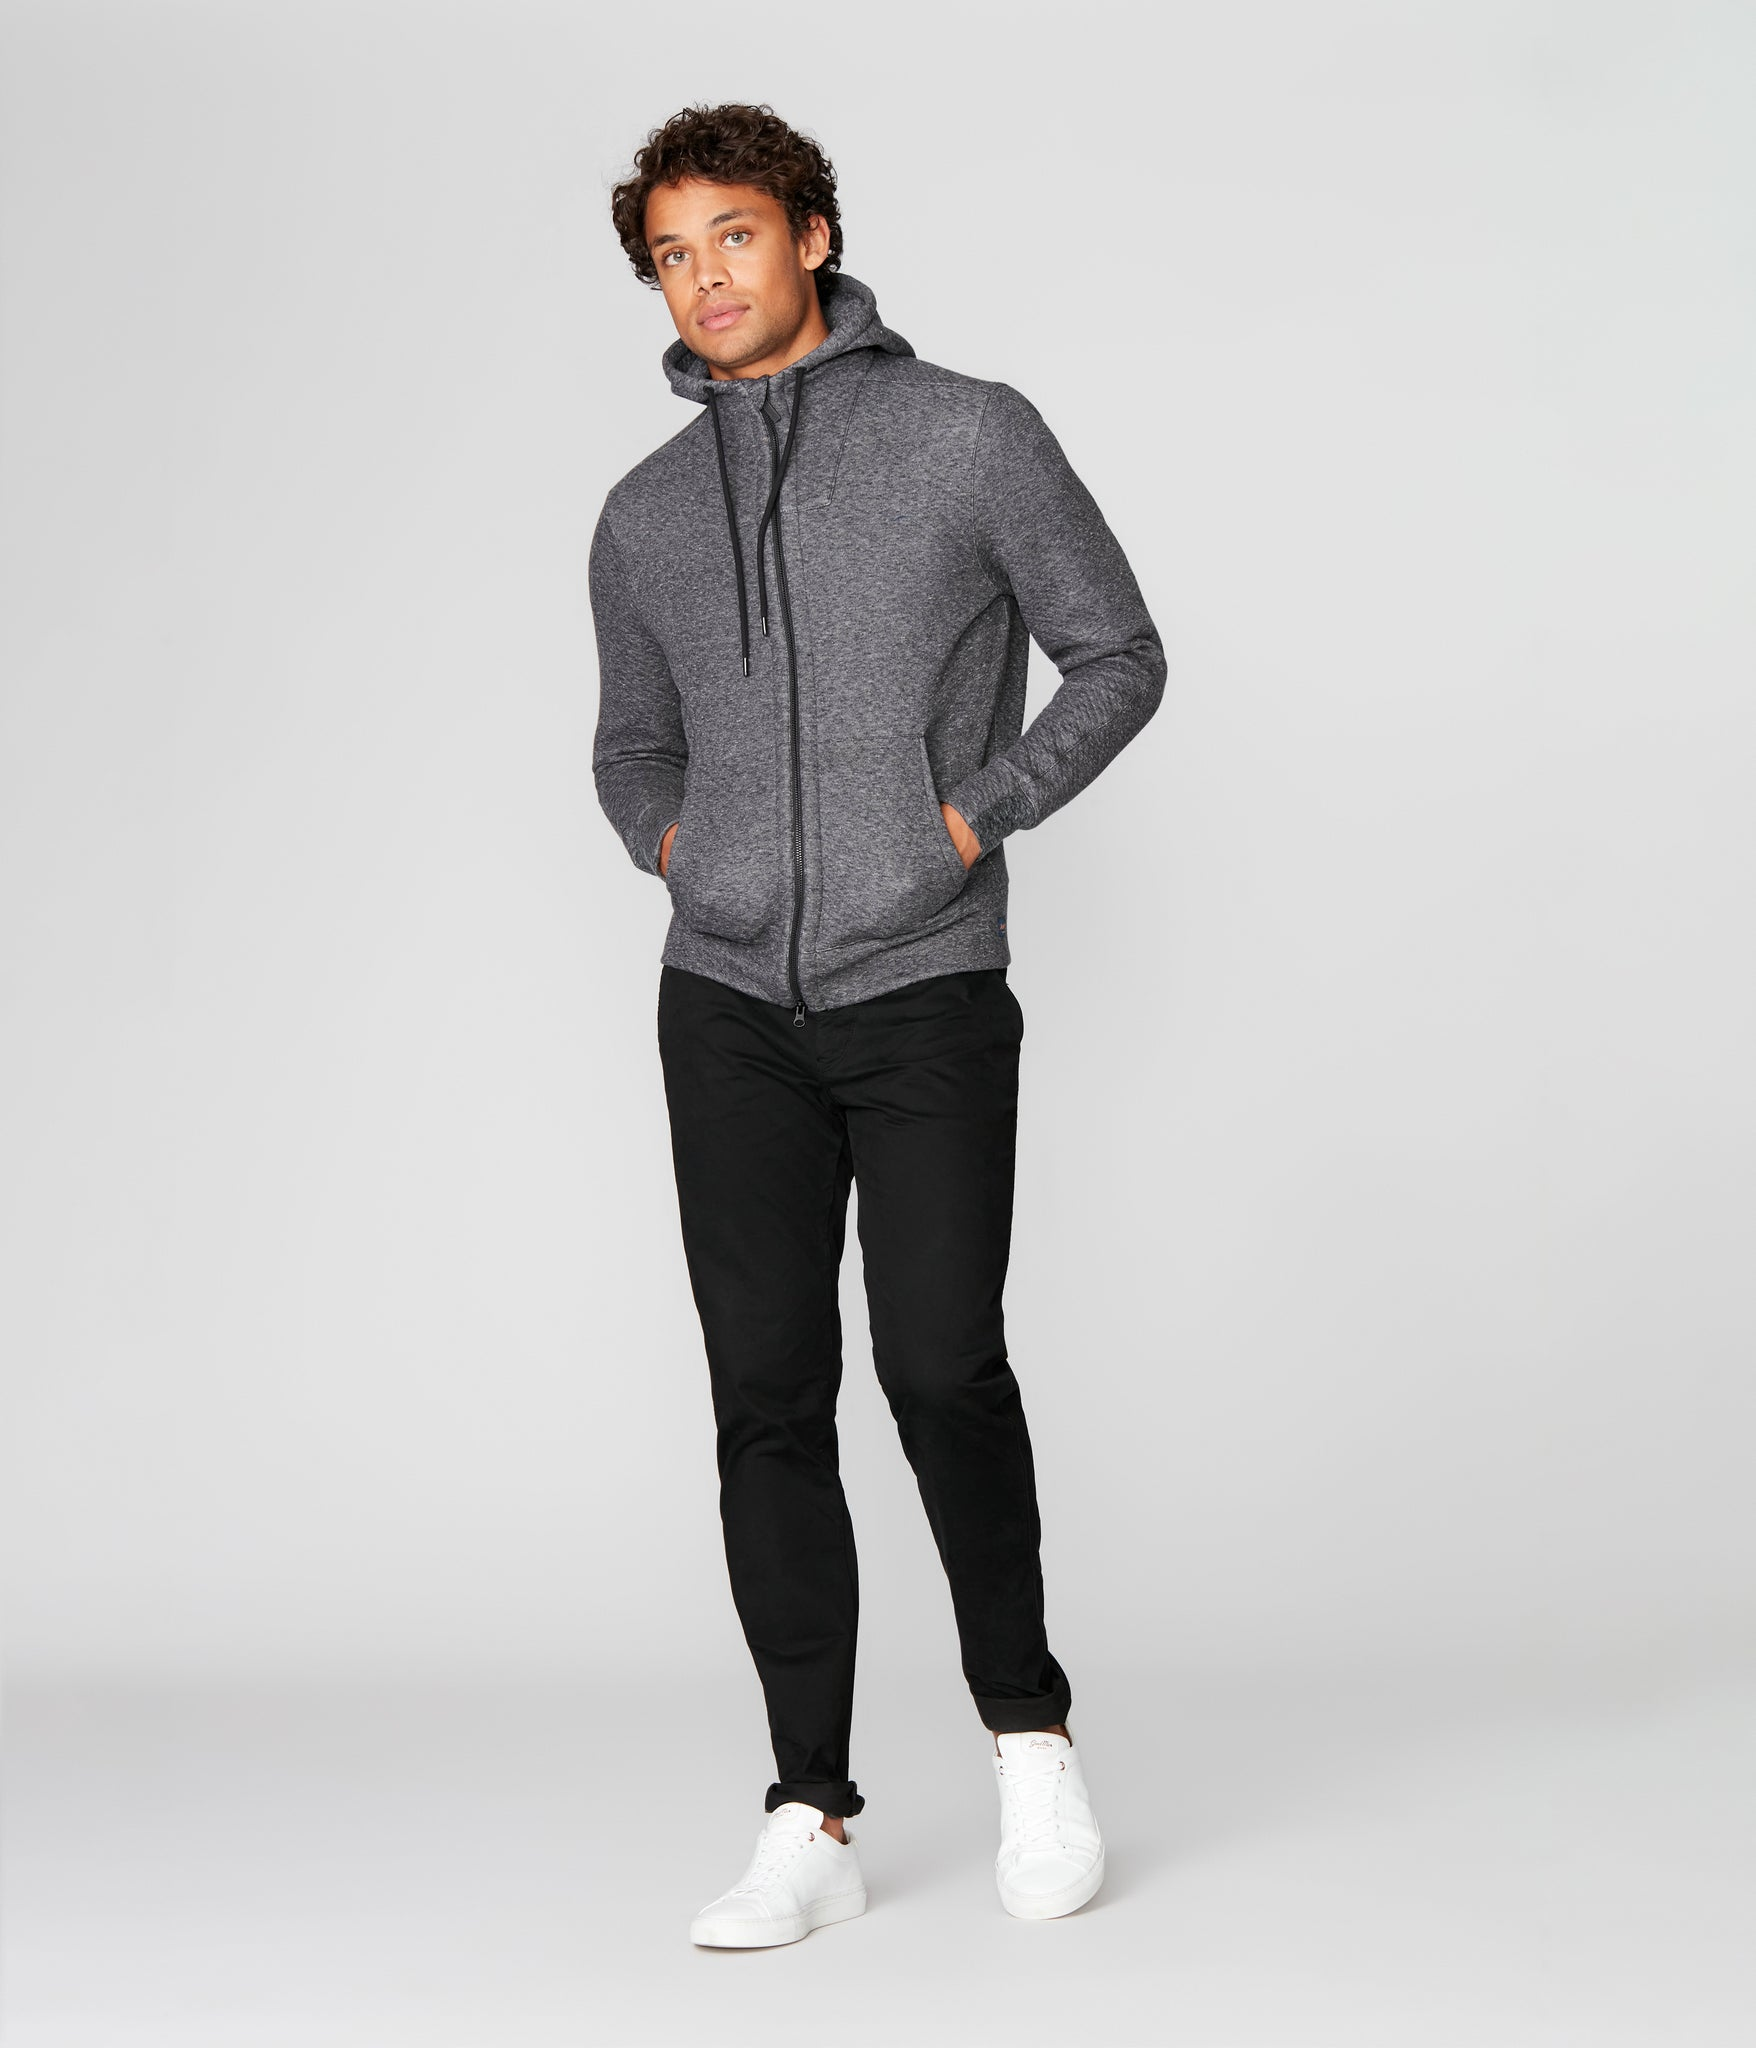 Twill Quilt Jacquard Knit Pro Zip Hoodie - Charcoal Heather